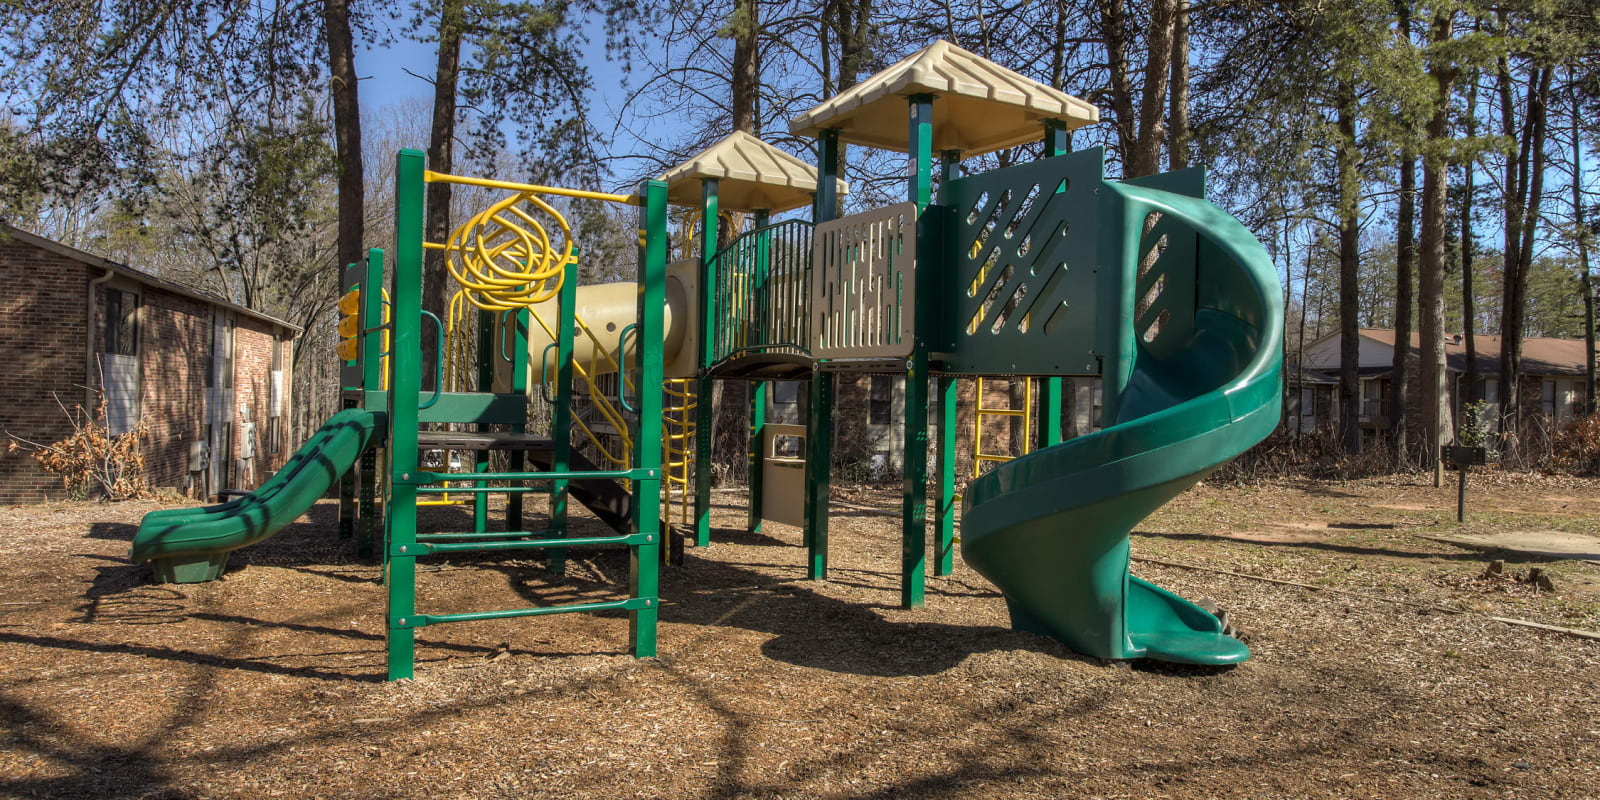 A children's playground with a slide at Enclave at North Point Apartment Homes in Winston Salem, North Carolina